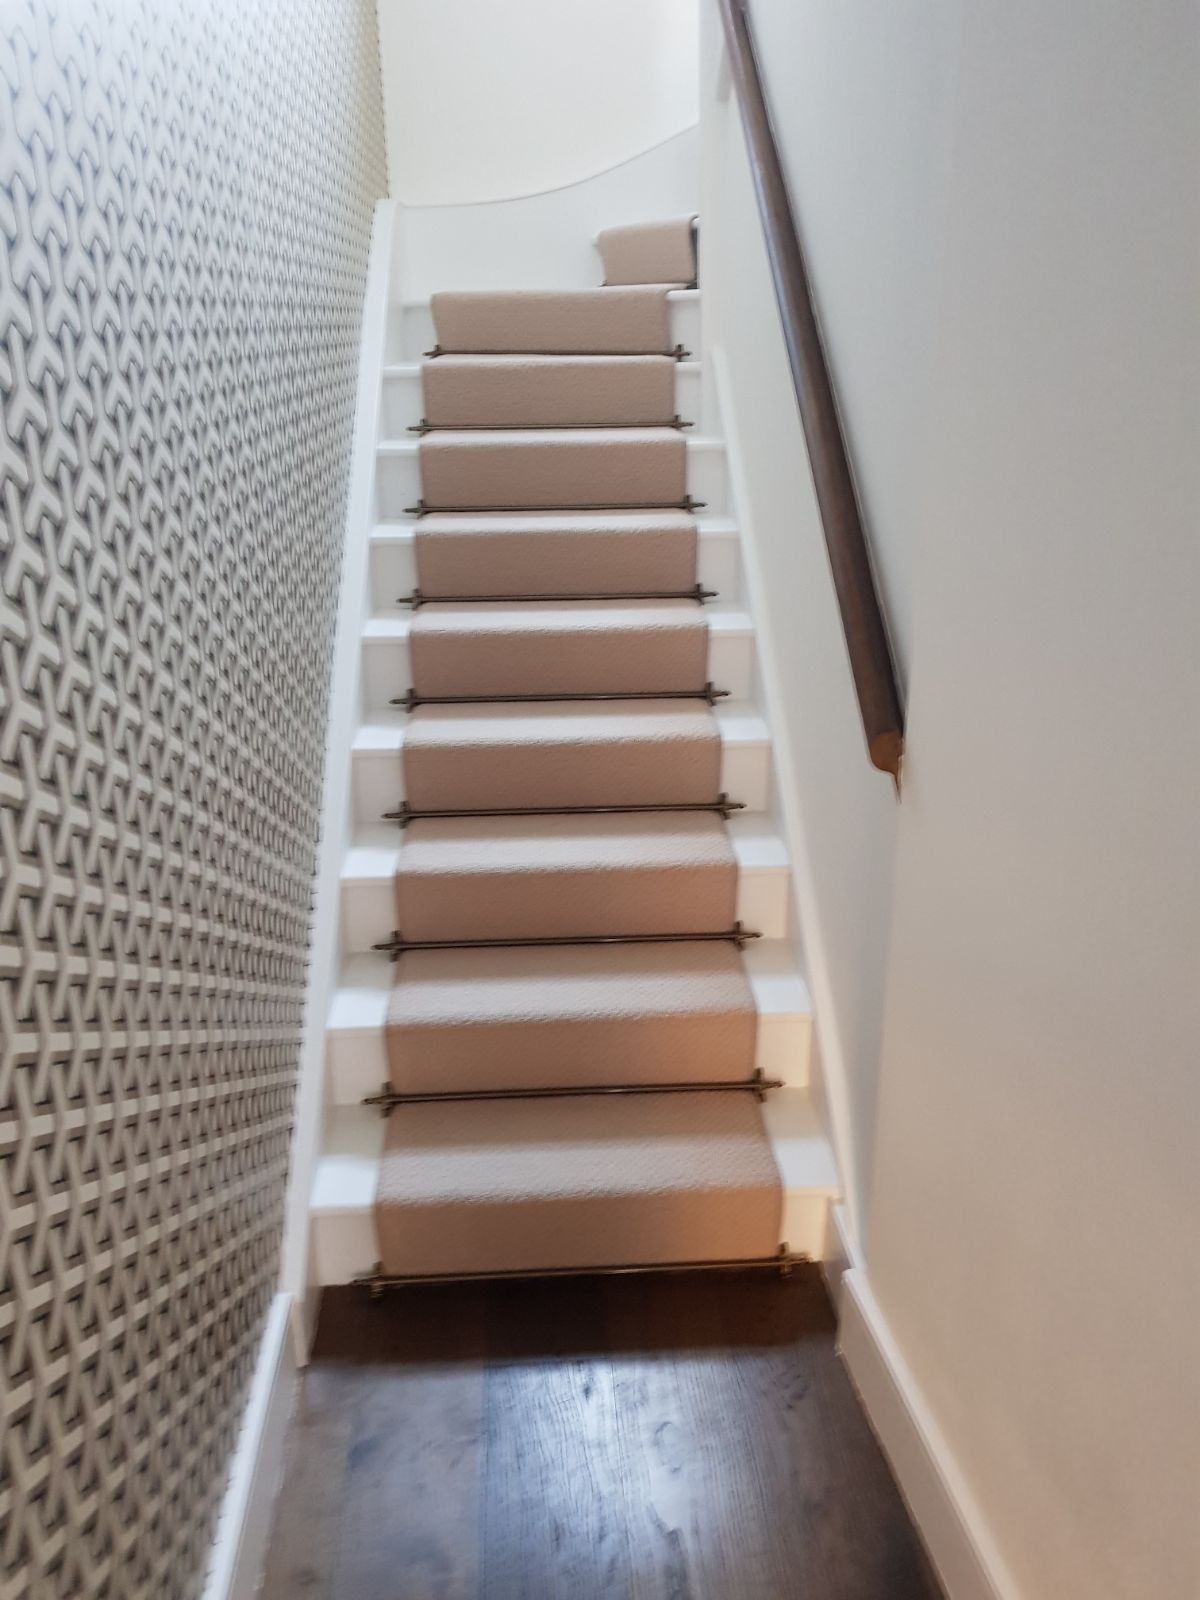 PORTFOLIO - STAIRS WITH STAIRRODS INSTALLATION (3)